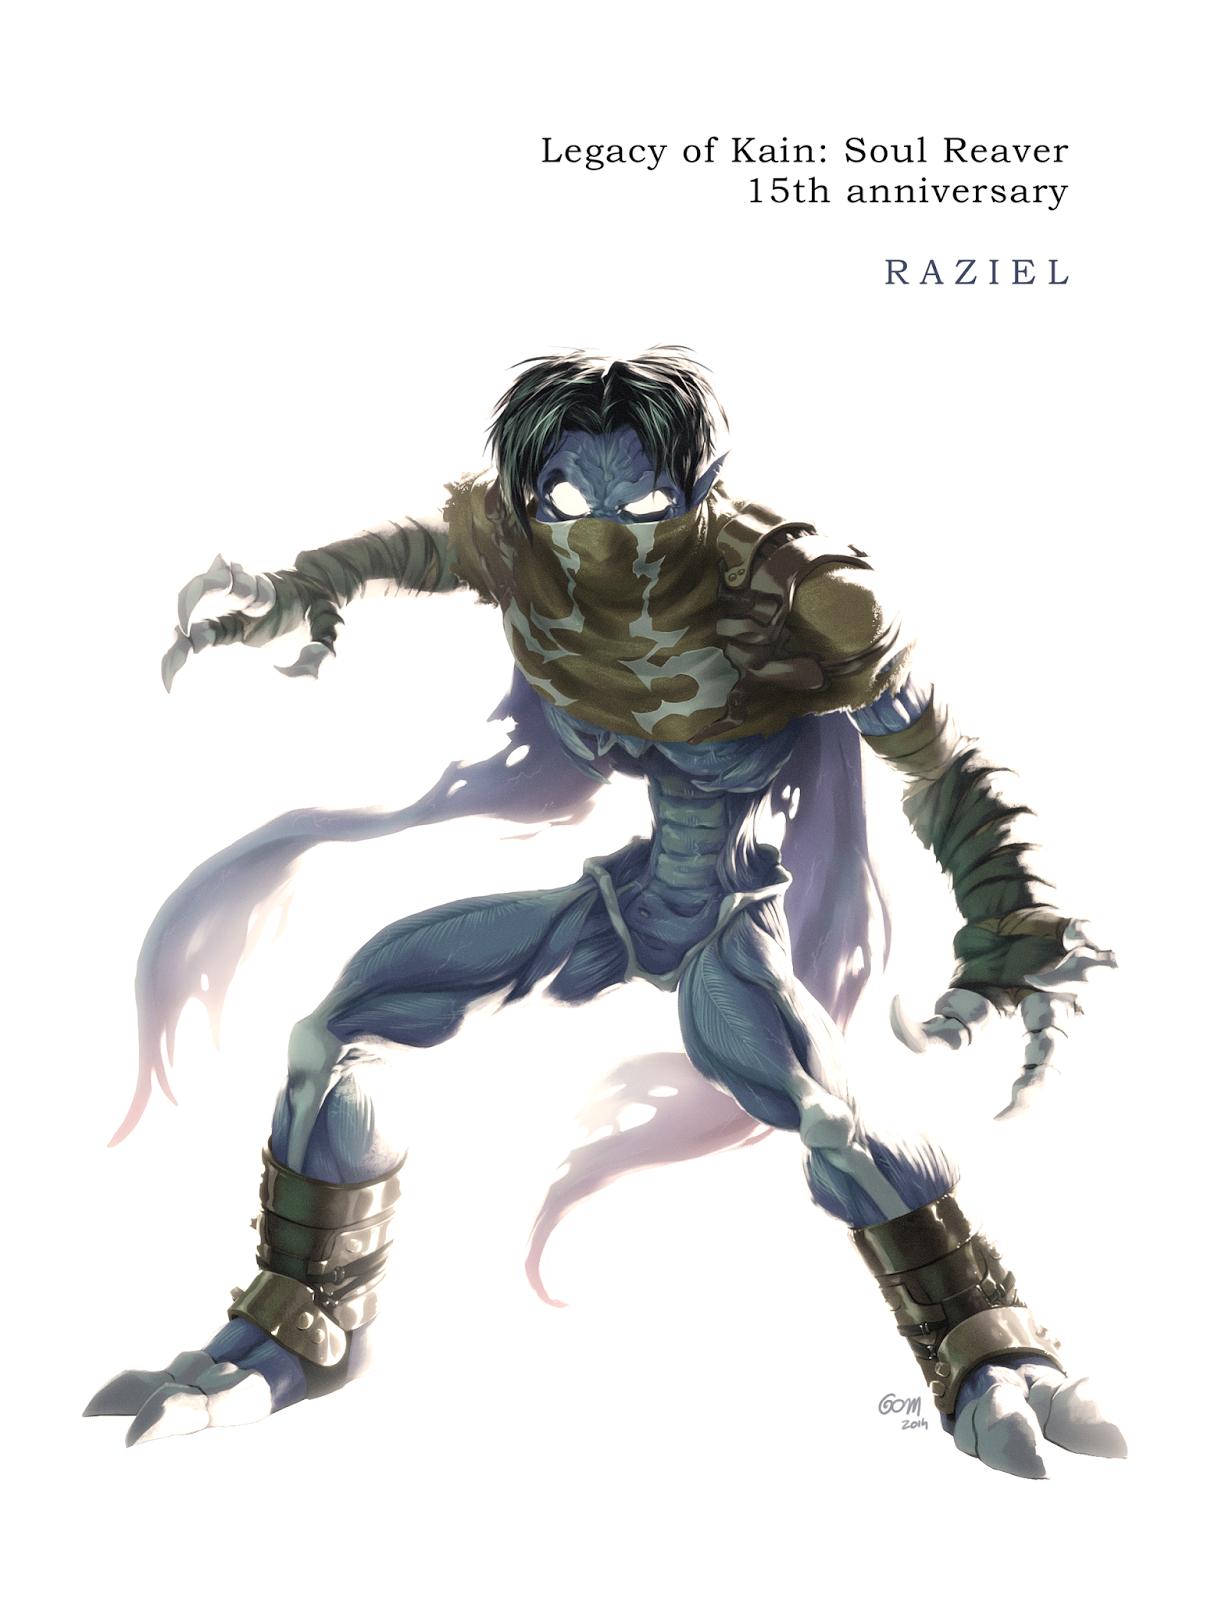 Fist of raziel